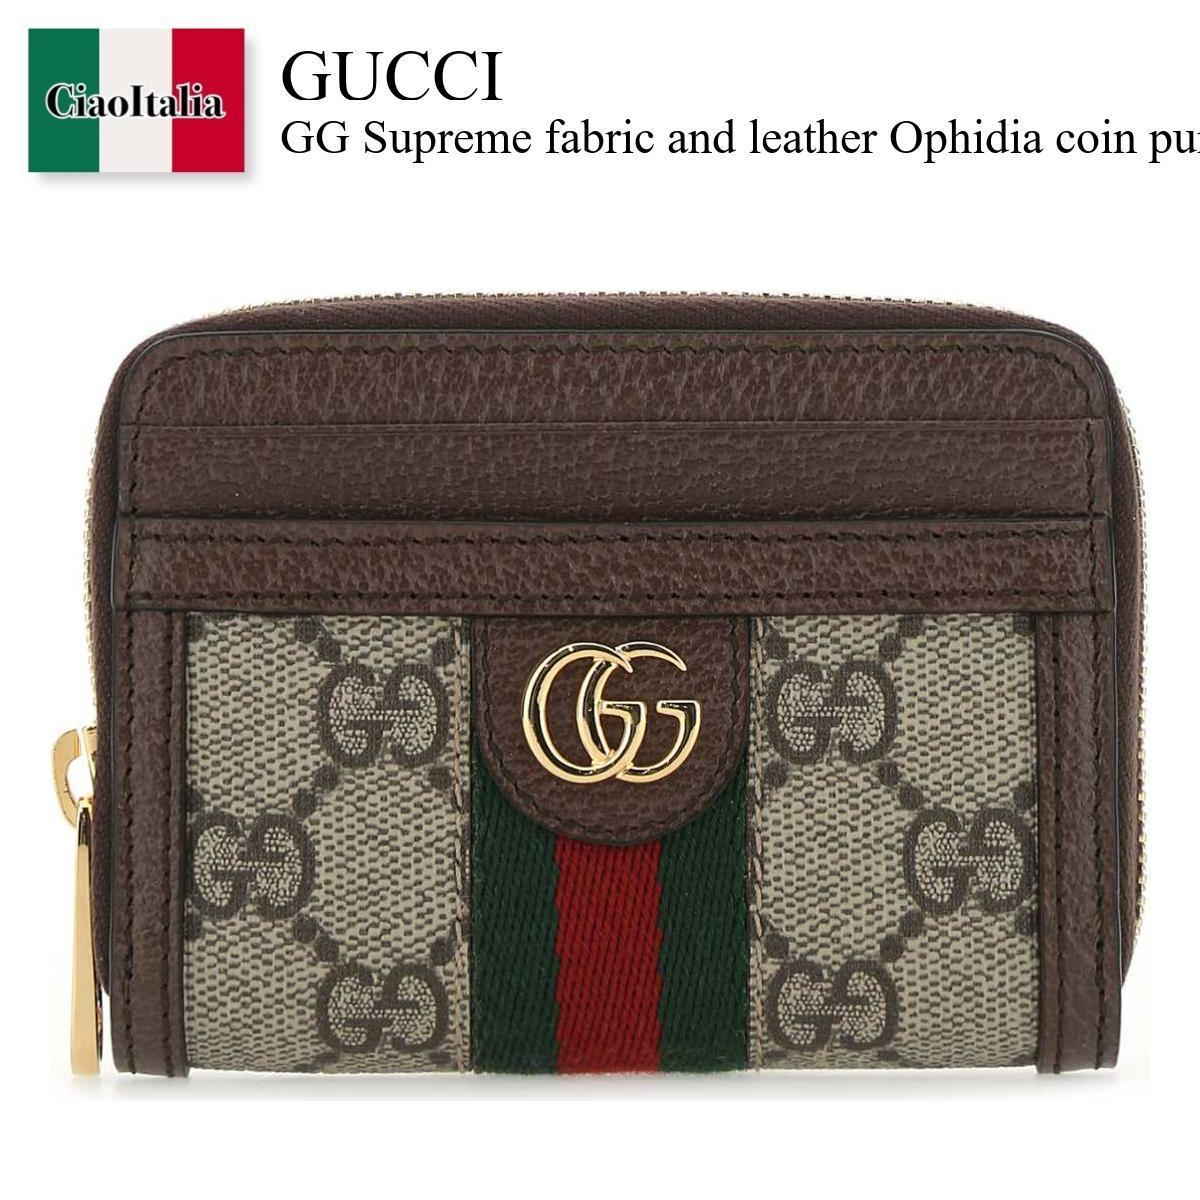 Gucci GG Supreme fabric and leather Ophidia coin purse (GUCCI/コインケース・小銭入れ) 658552 96IWG 8745  65855296IWG  65855296IWG 8745